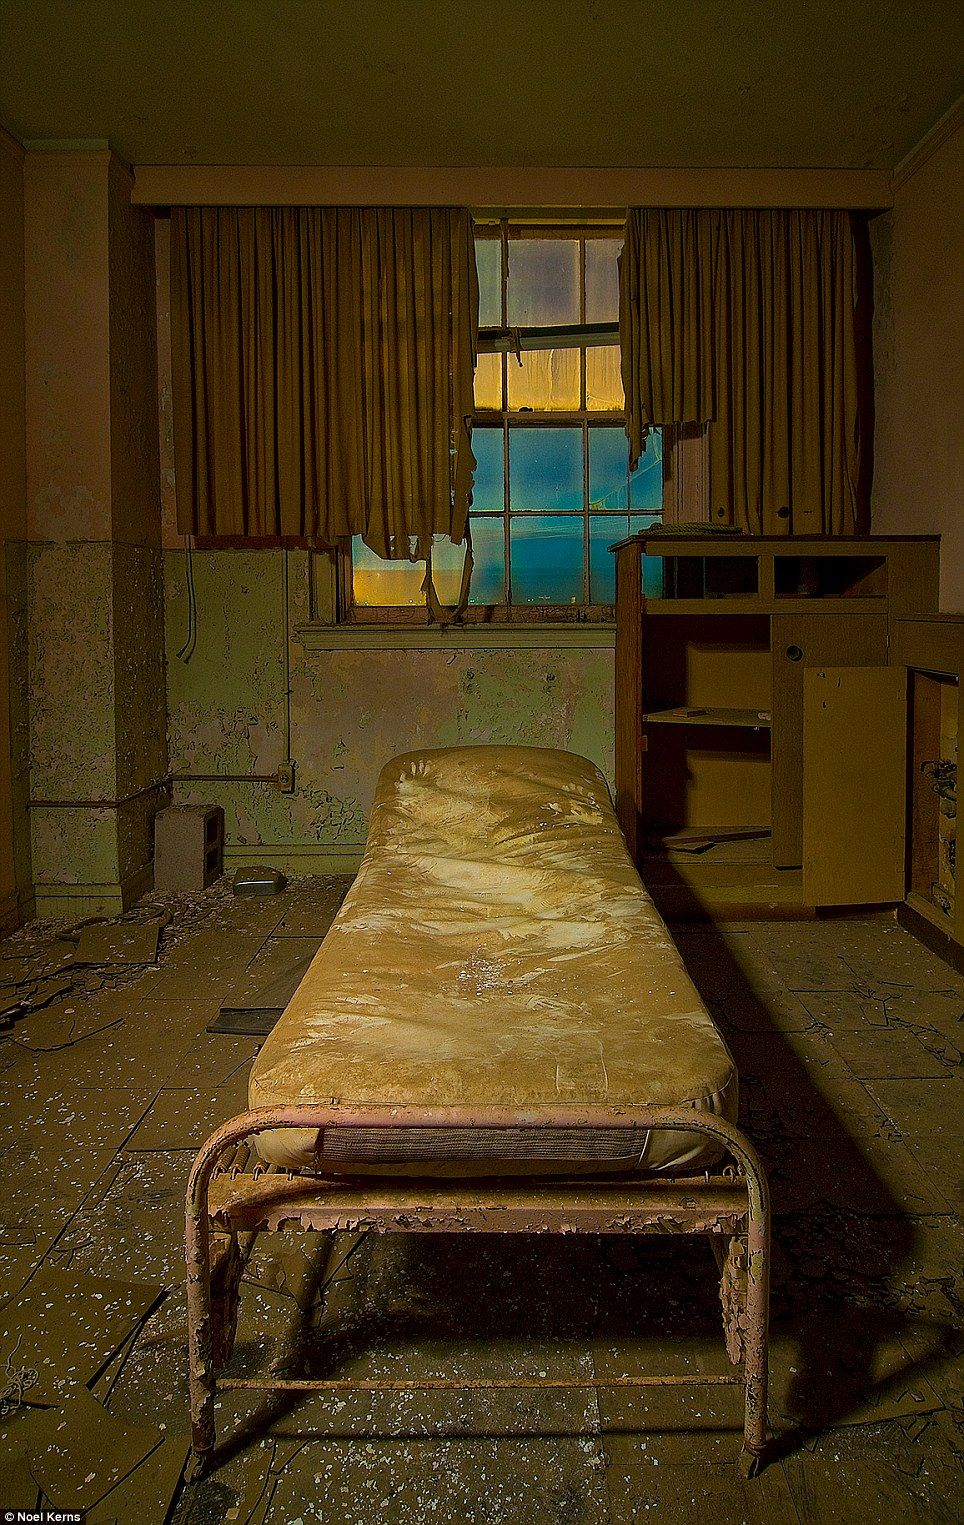 Texas S Once Spectacular Baker Hotel In Ruins Haunted Hotelhaunted Placesmineral Wells